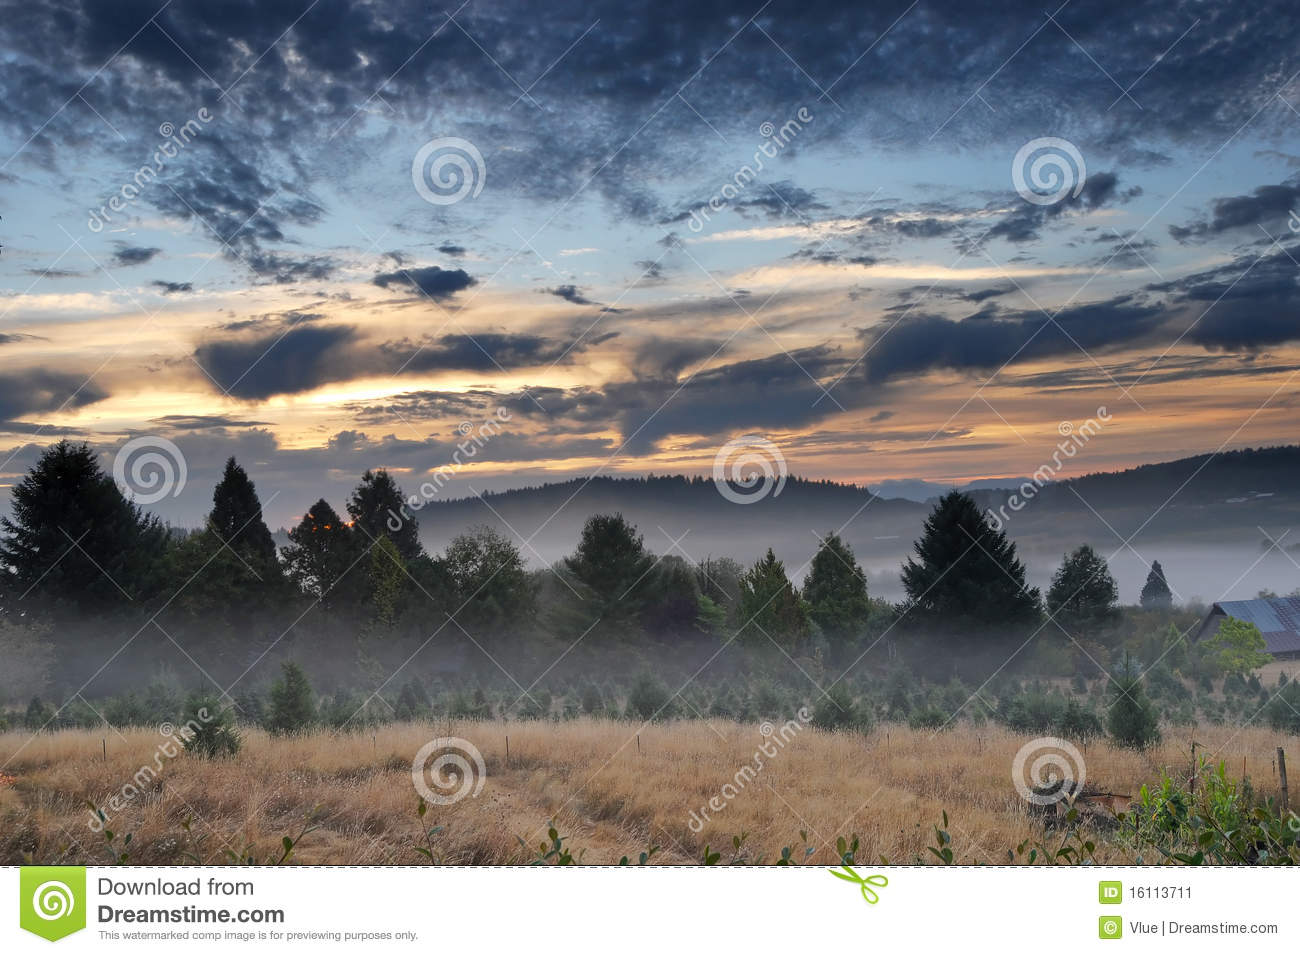 Beautiful Morning Landscape with Fog and a sunrise. HDR. Dramatic